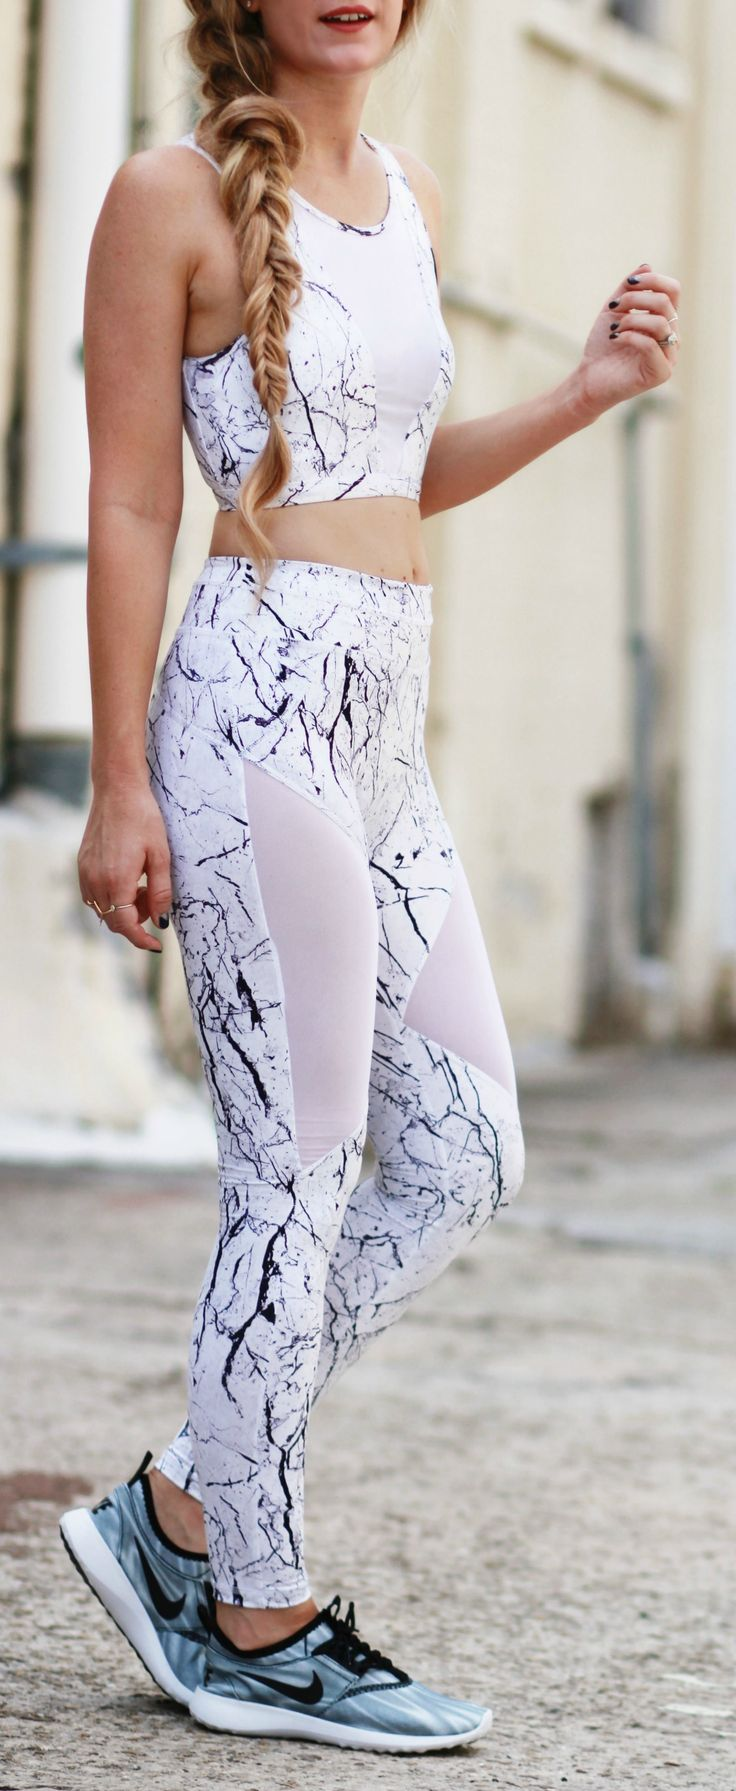 Carbon 38 Cute Work Out Outfit